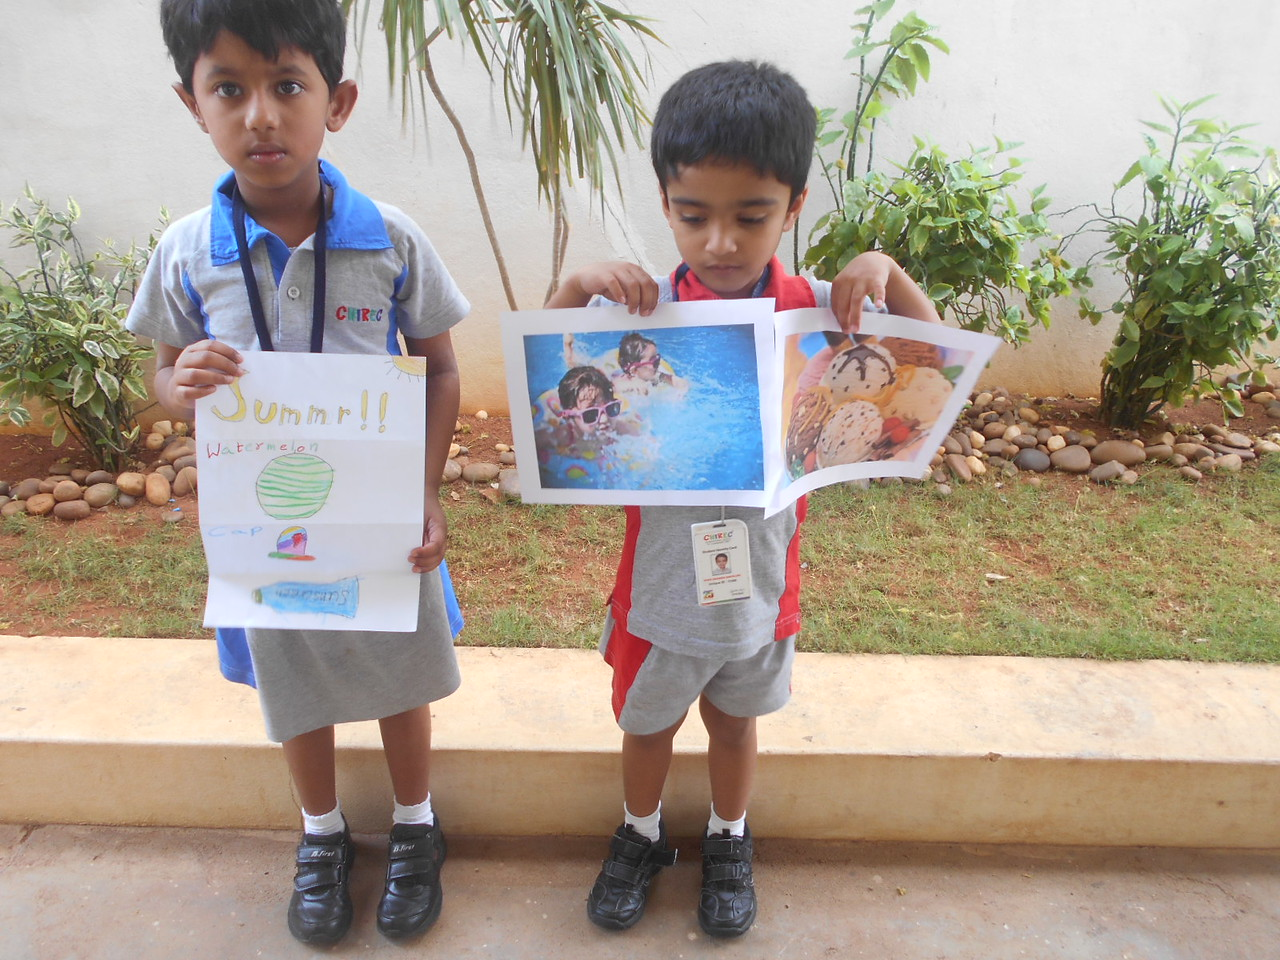 COMMUNICATION AND COGNITIVE SKILLS ENHANCED THROUGH SHOW AND TELL ACTIVITY ON THE TOPIC FUN IN THE SUN1